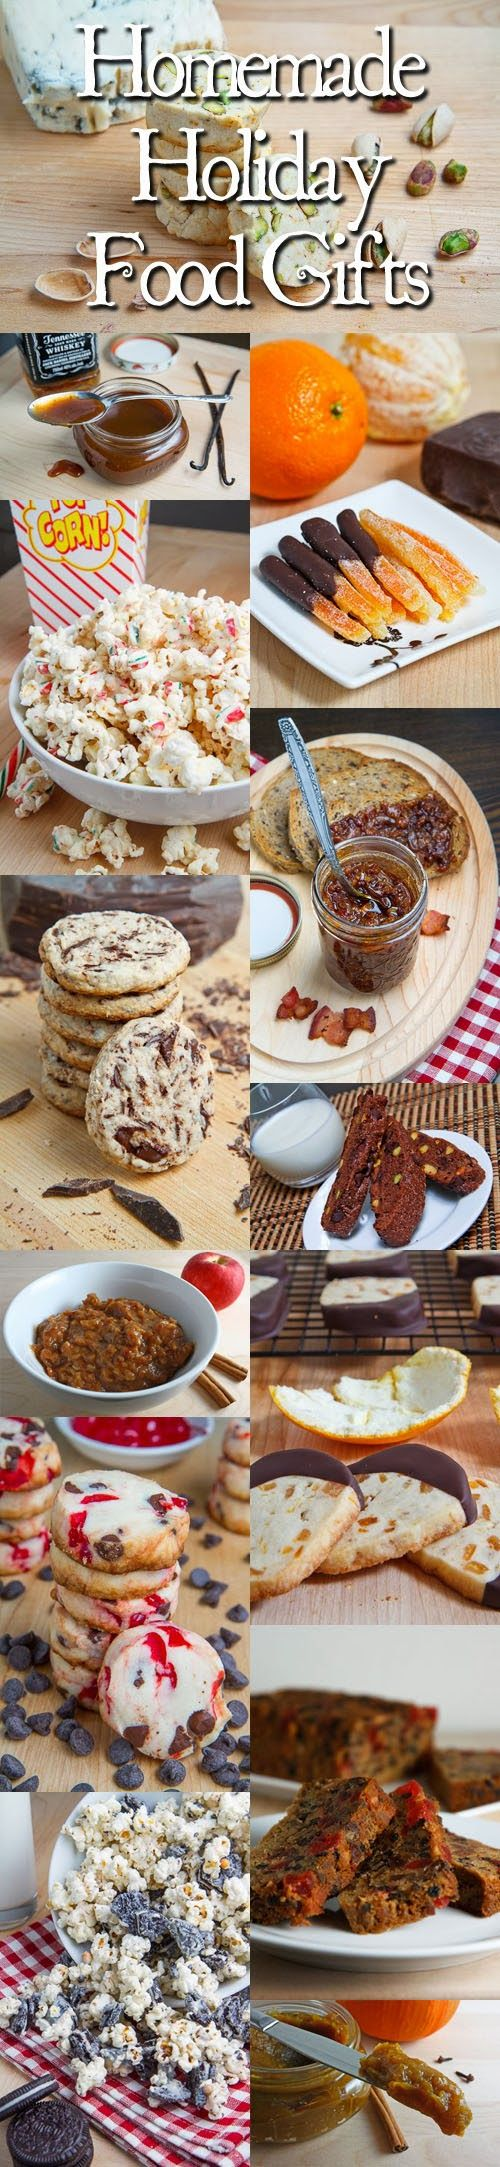 134 best food gifts images on pinterest food gifts edible gifts homemade holiday food gifts christmas foodschristmas recipesholiday forumfinder Gallery